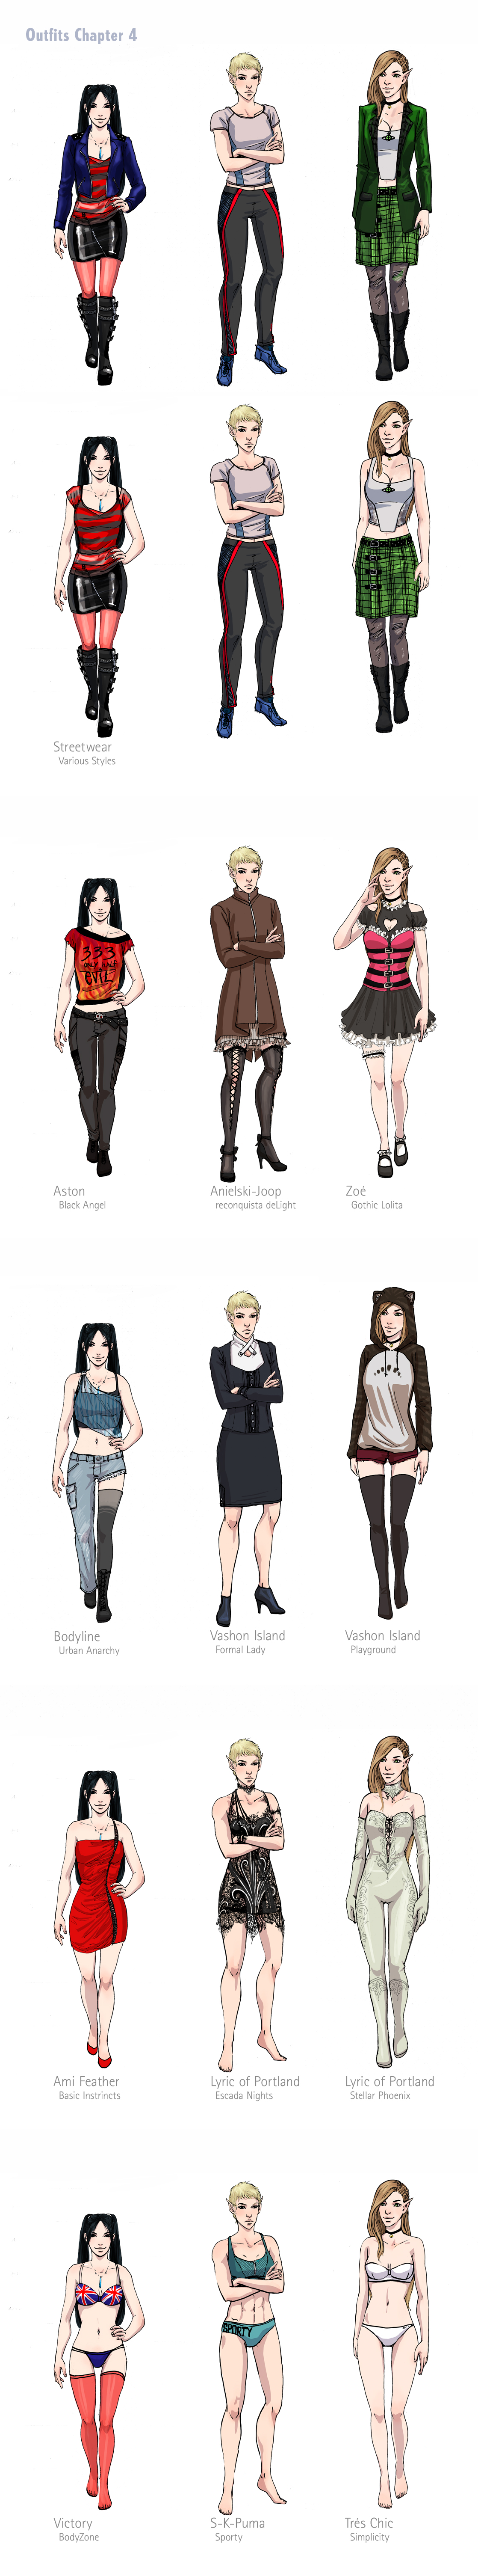 Shadowrun Fashion Labels